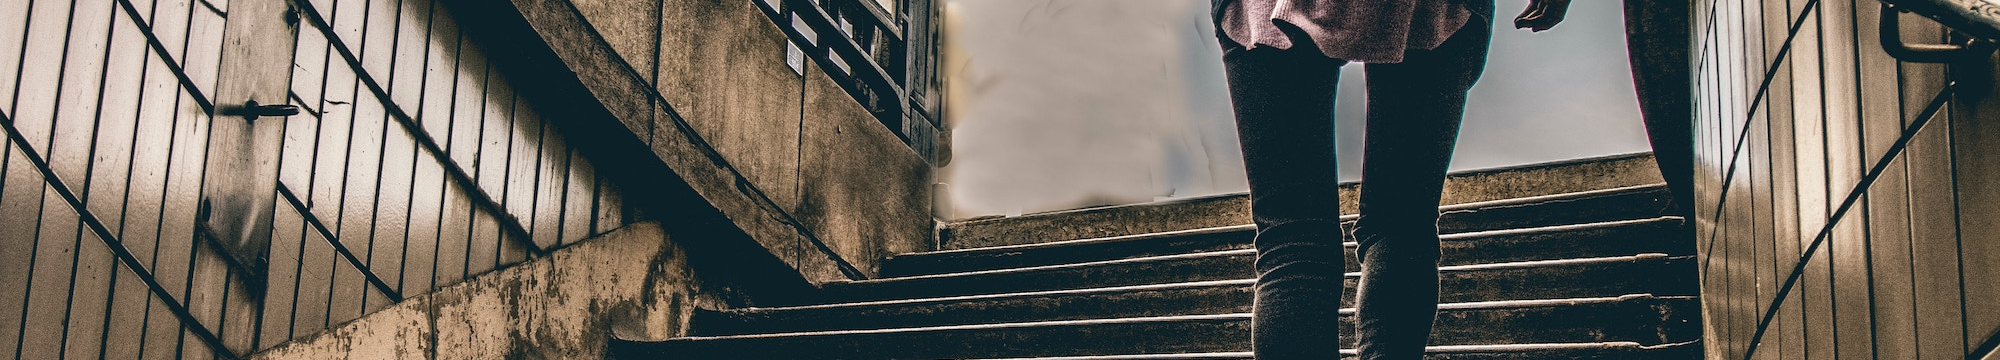 Woman escaping up a flight of stairs